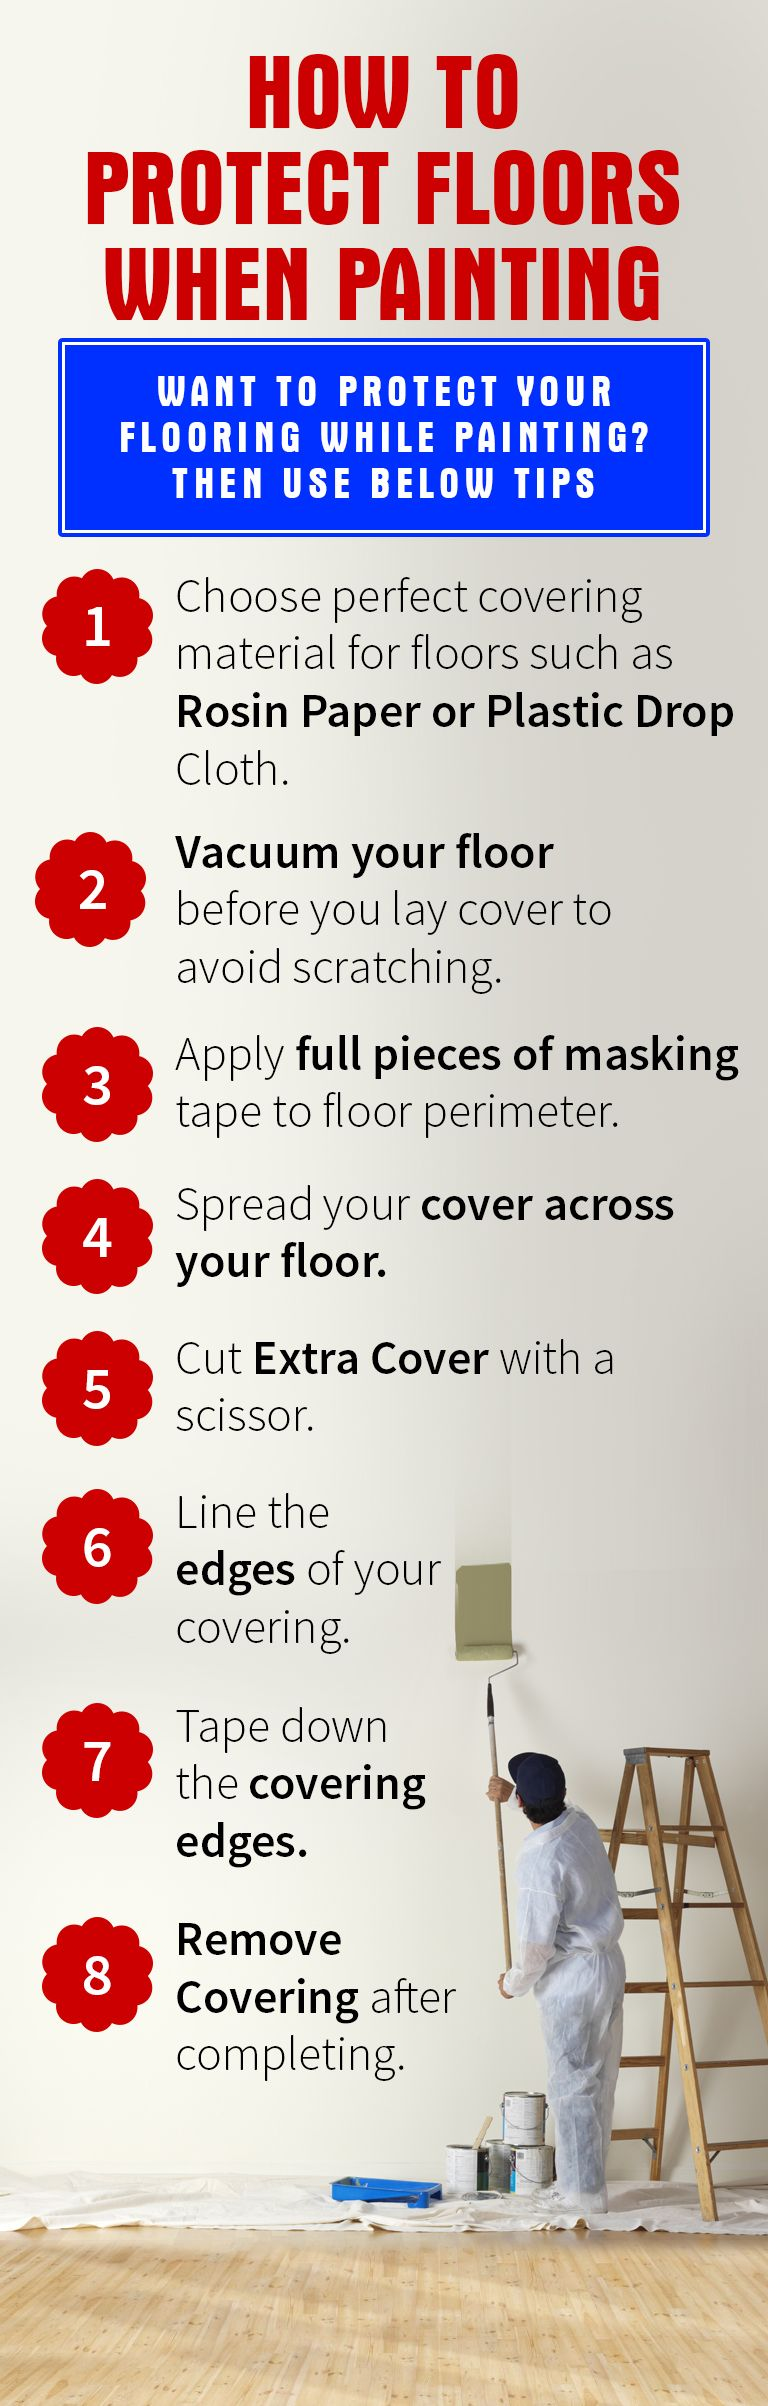 How To Protect Floors When Painting (Infographics) https